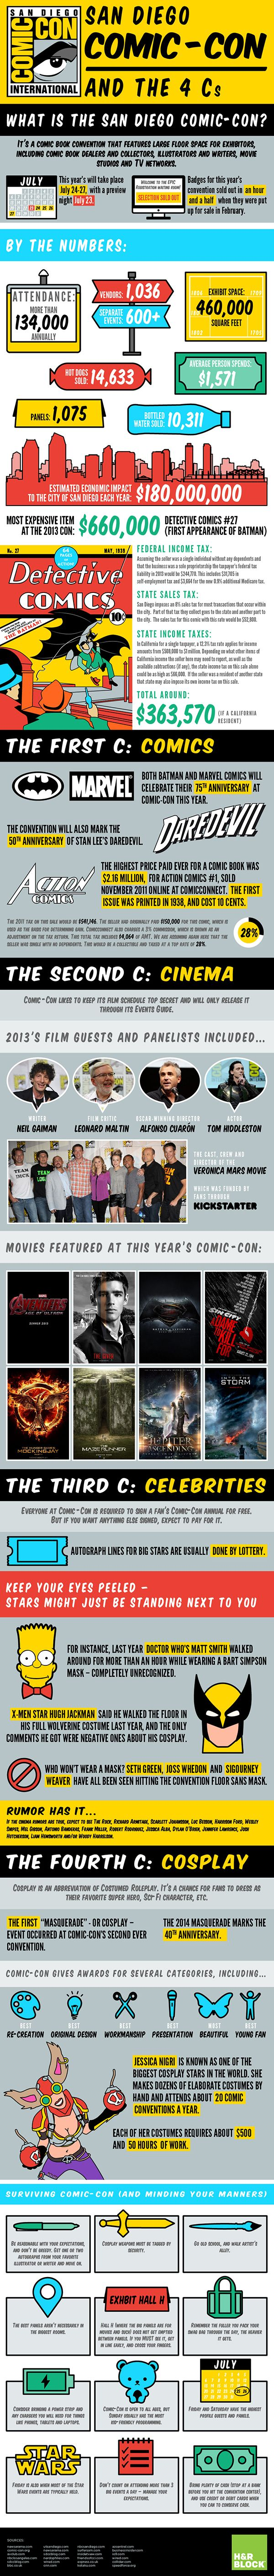 What is the San Diego Comic-Con? [INFOGRAPHIC] This is so helpful! Someday! Someday I will have money and I will go!